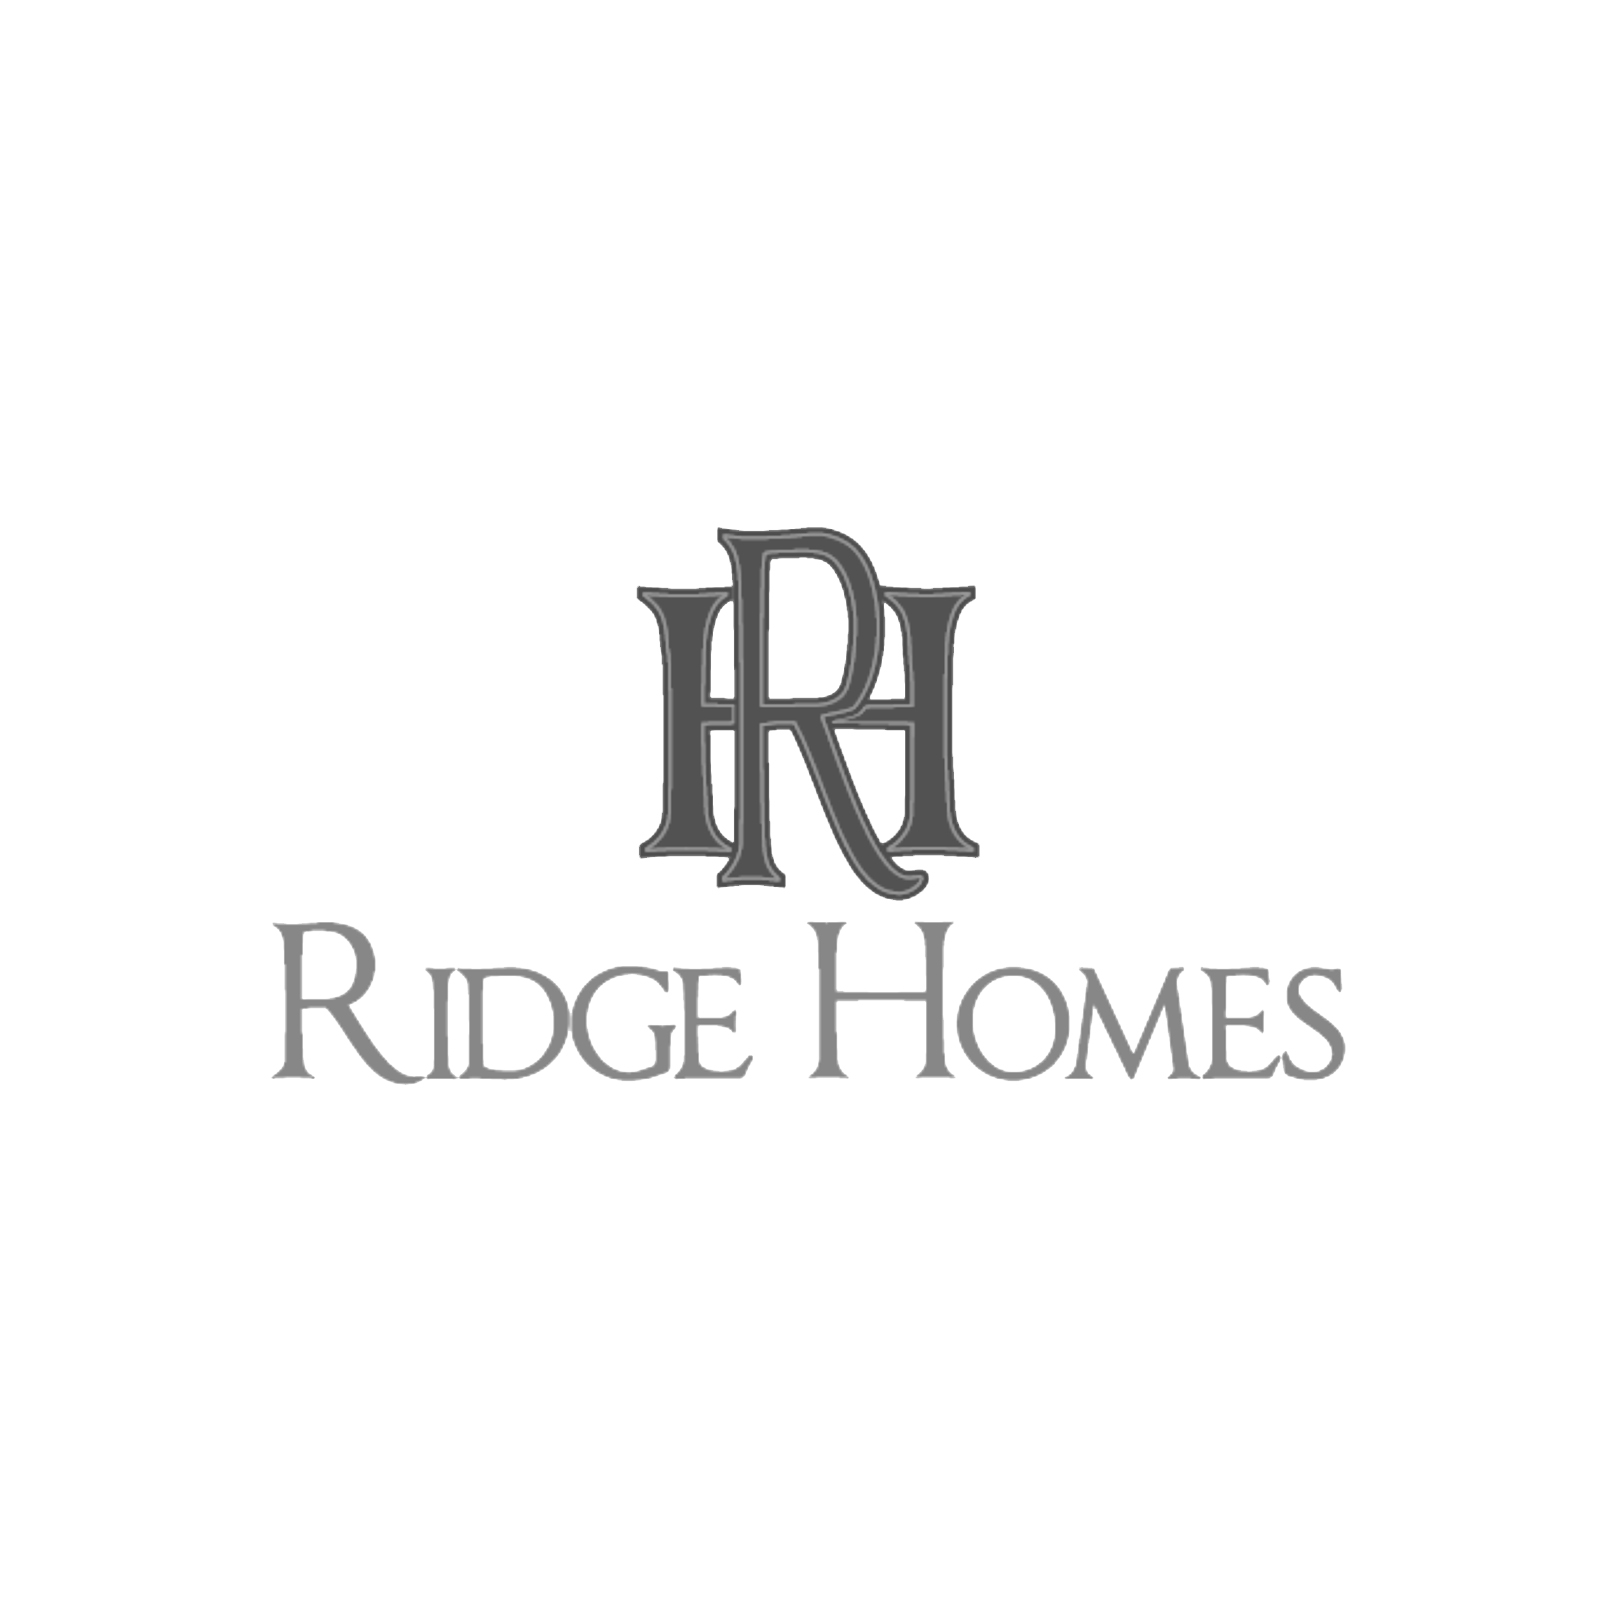 Ridge-Homes-Logo.jpg